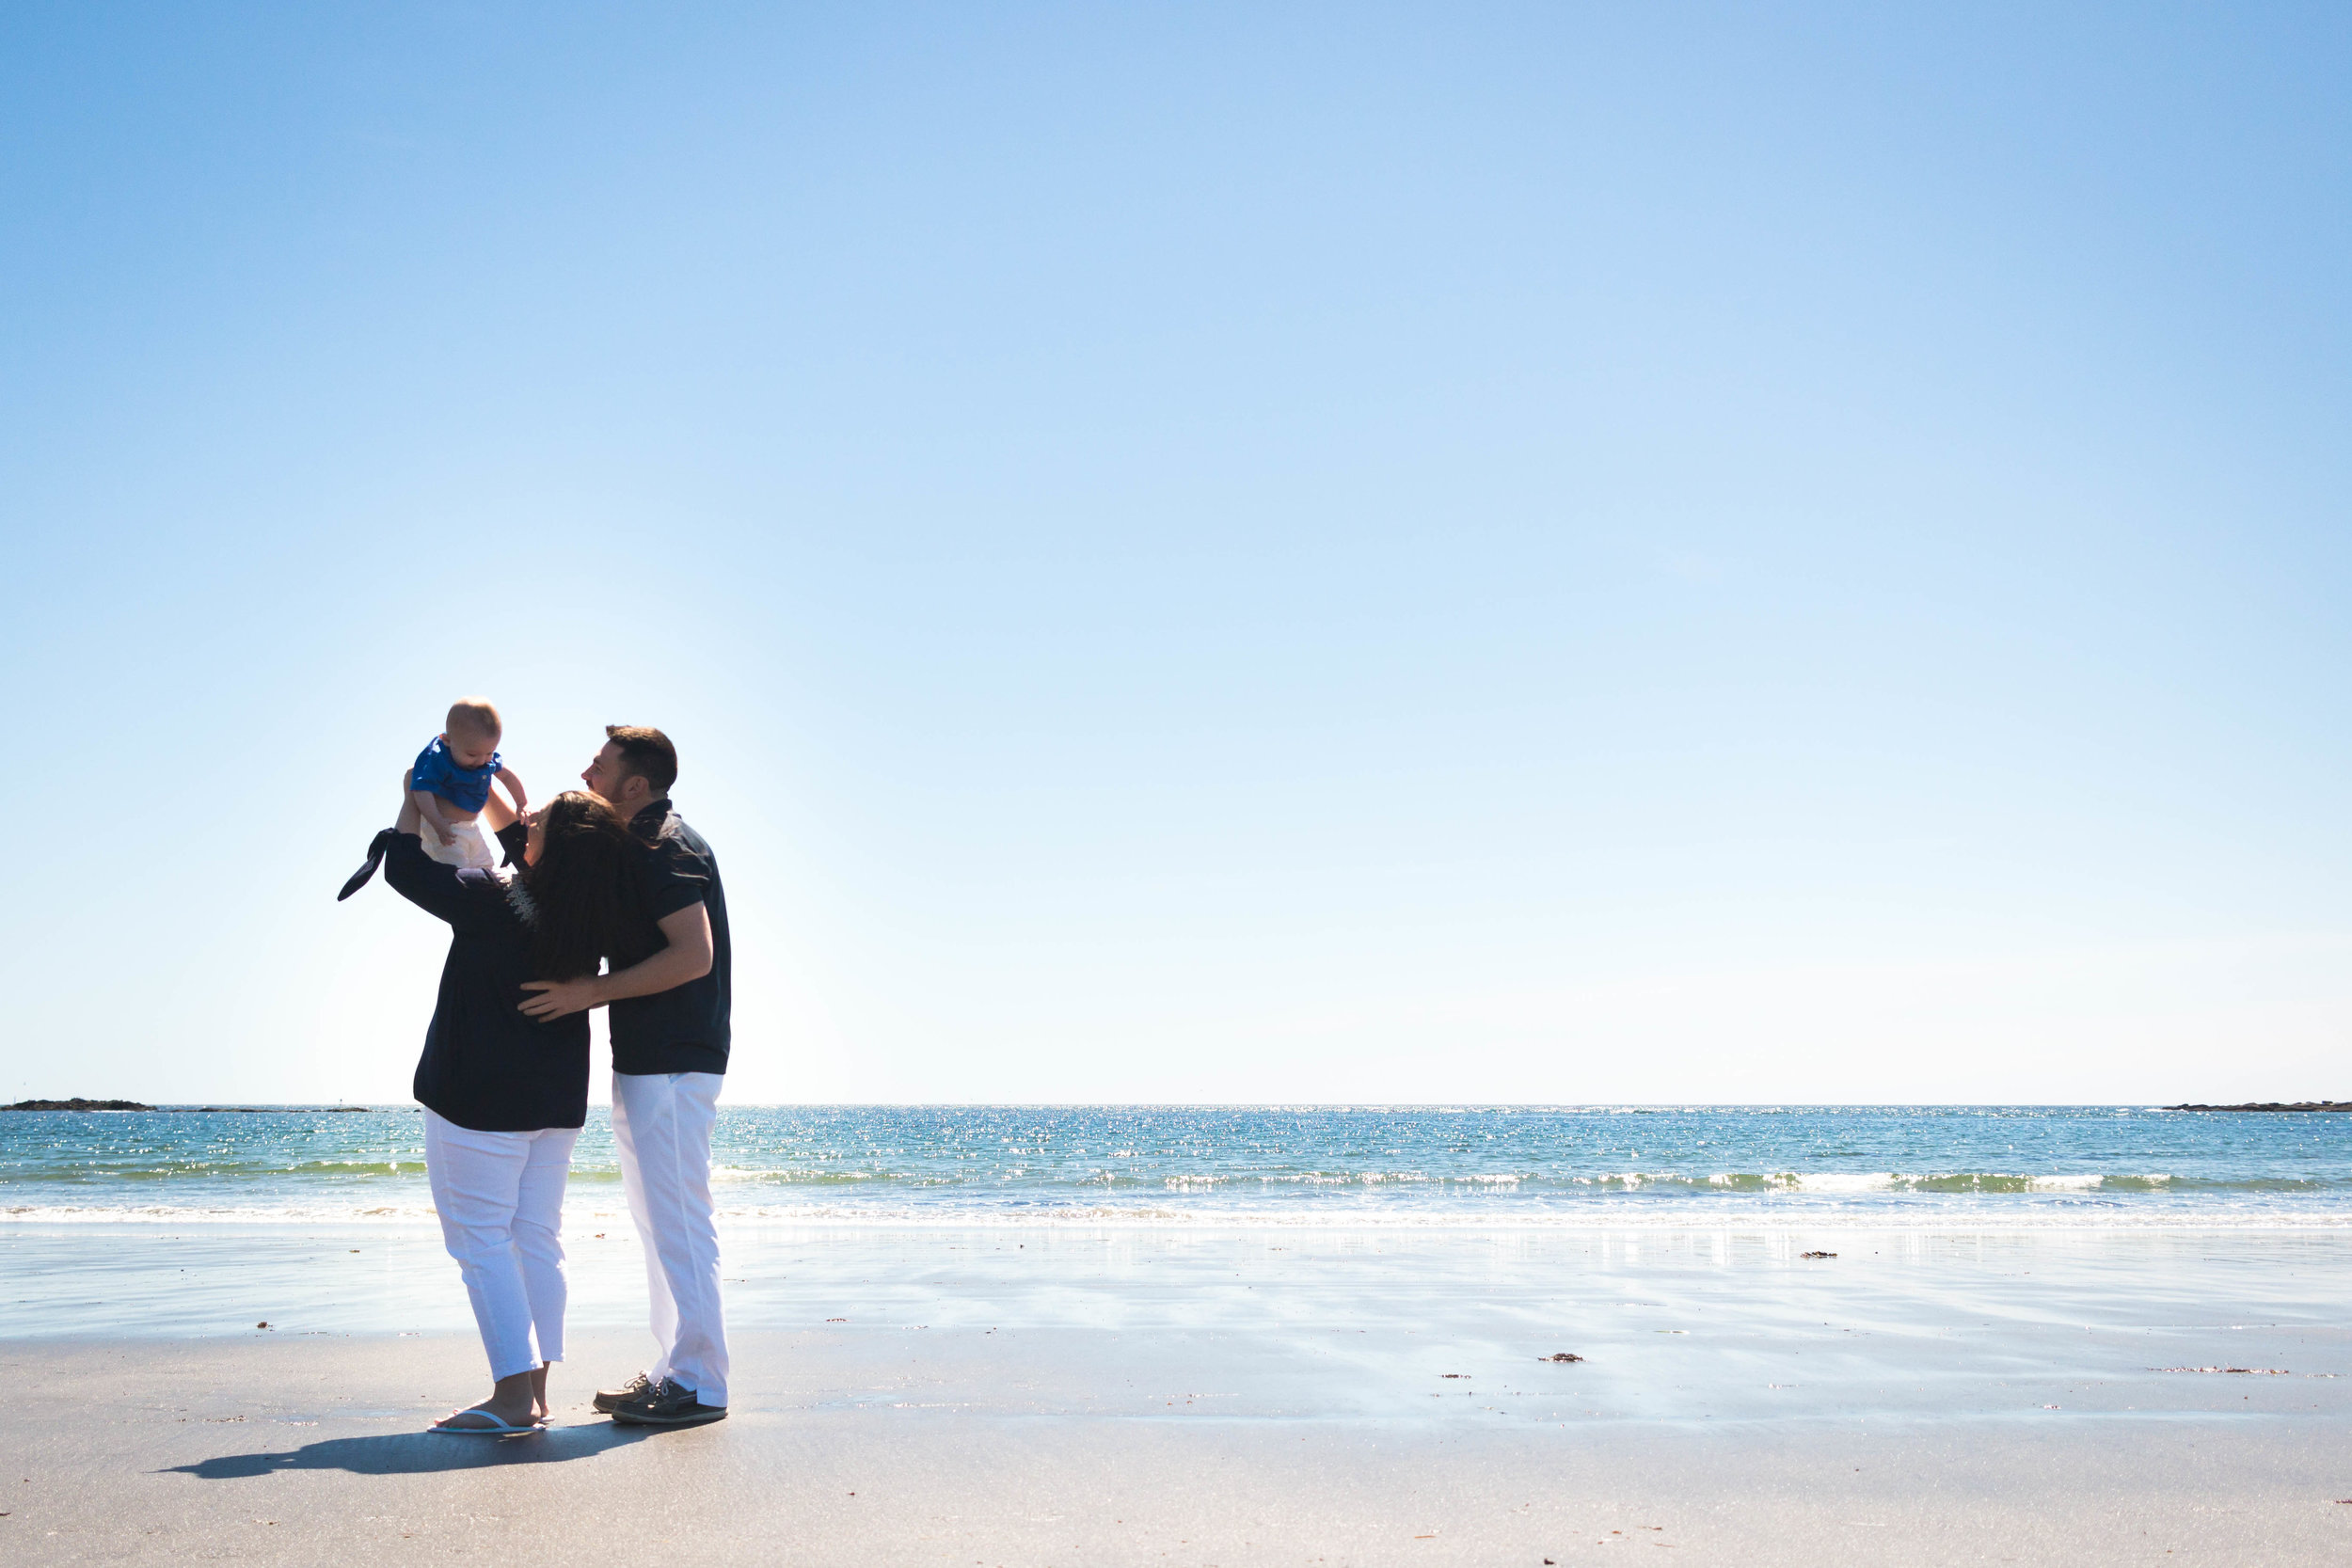 mom and dad holding baby on the beach